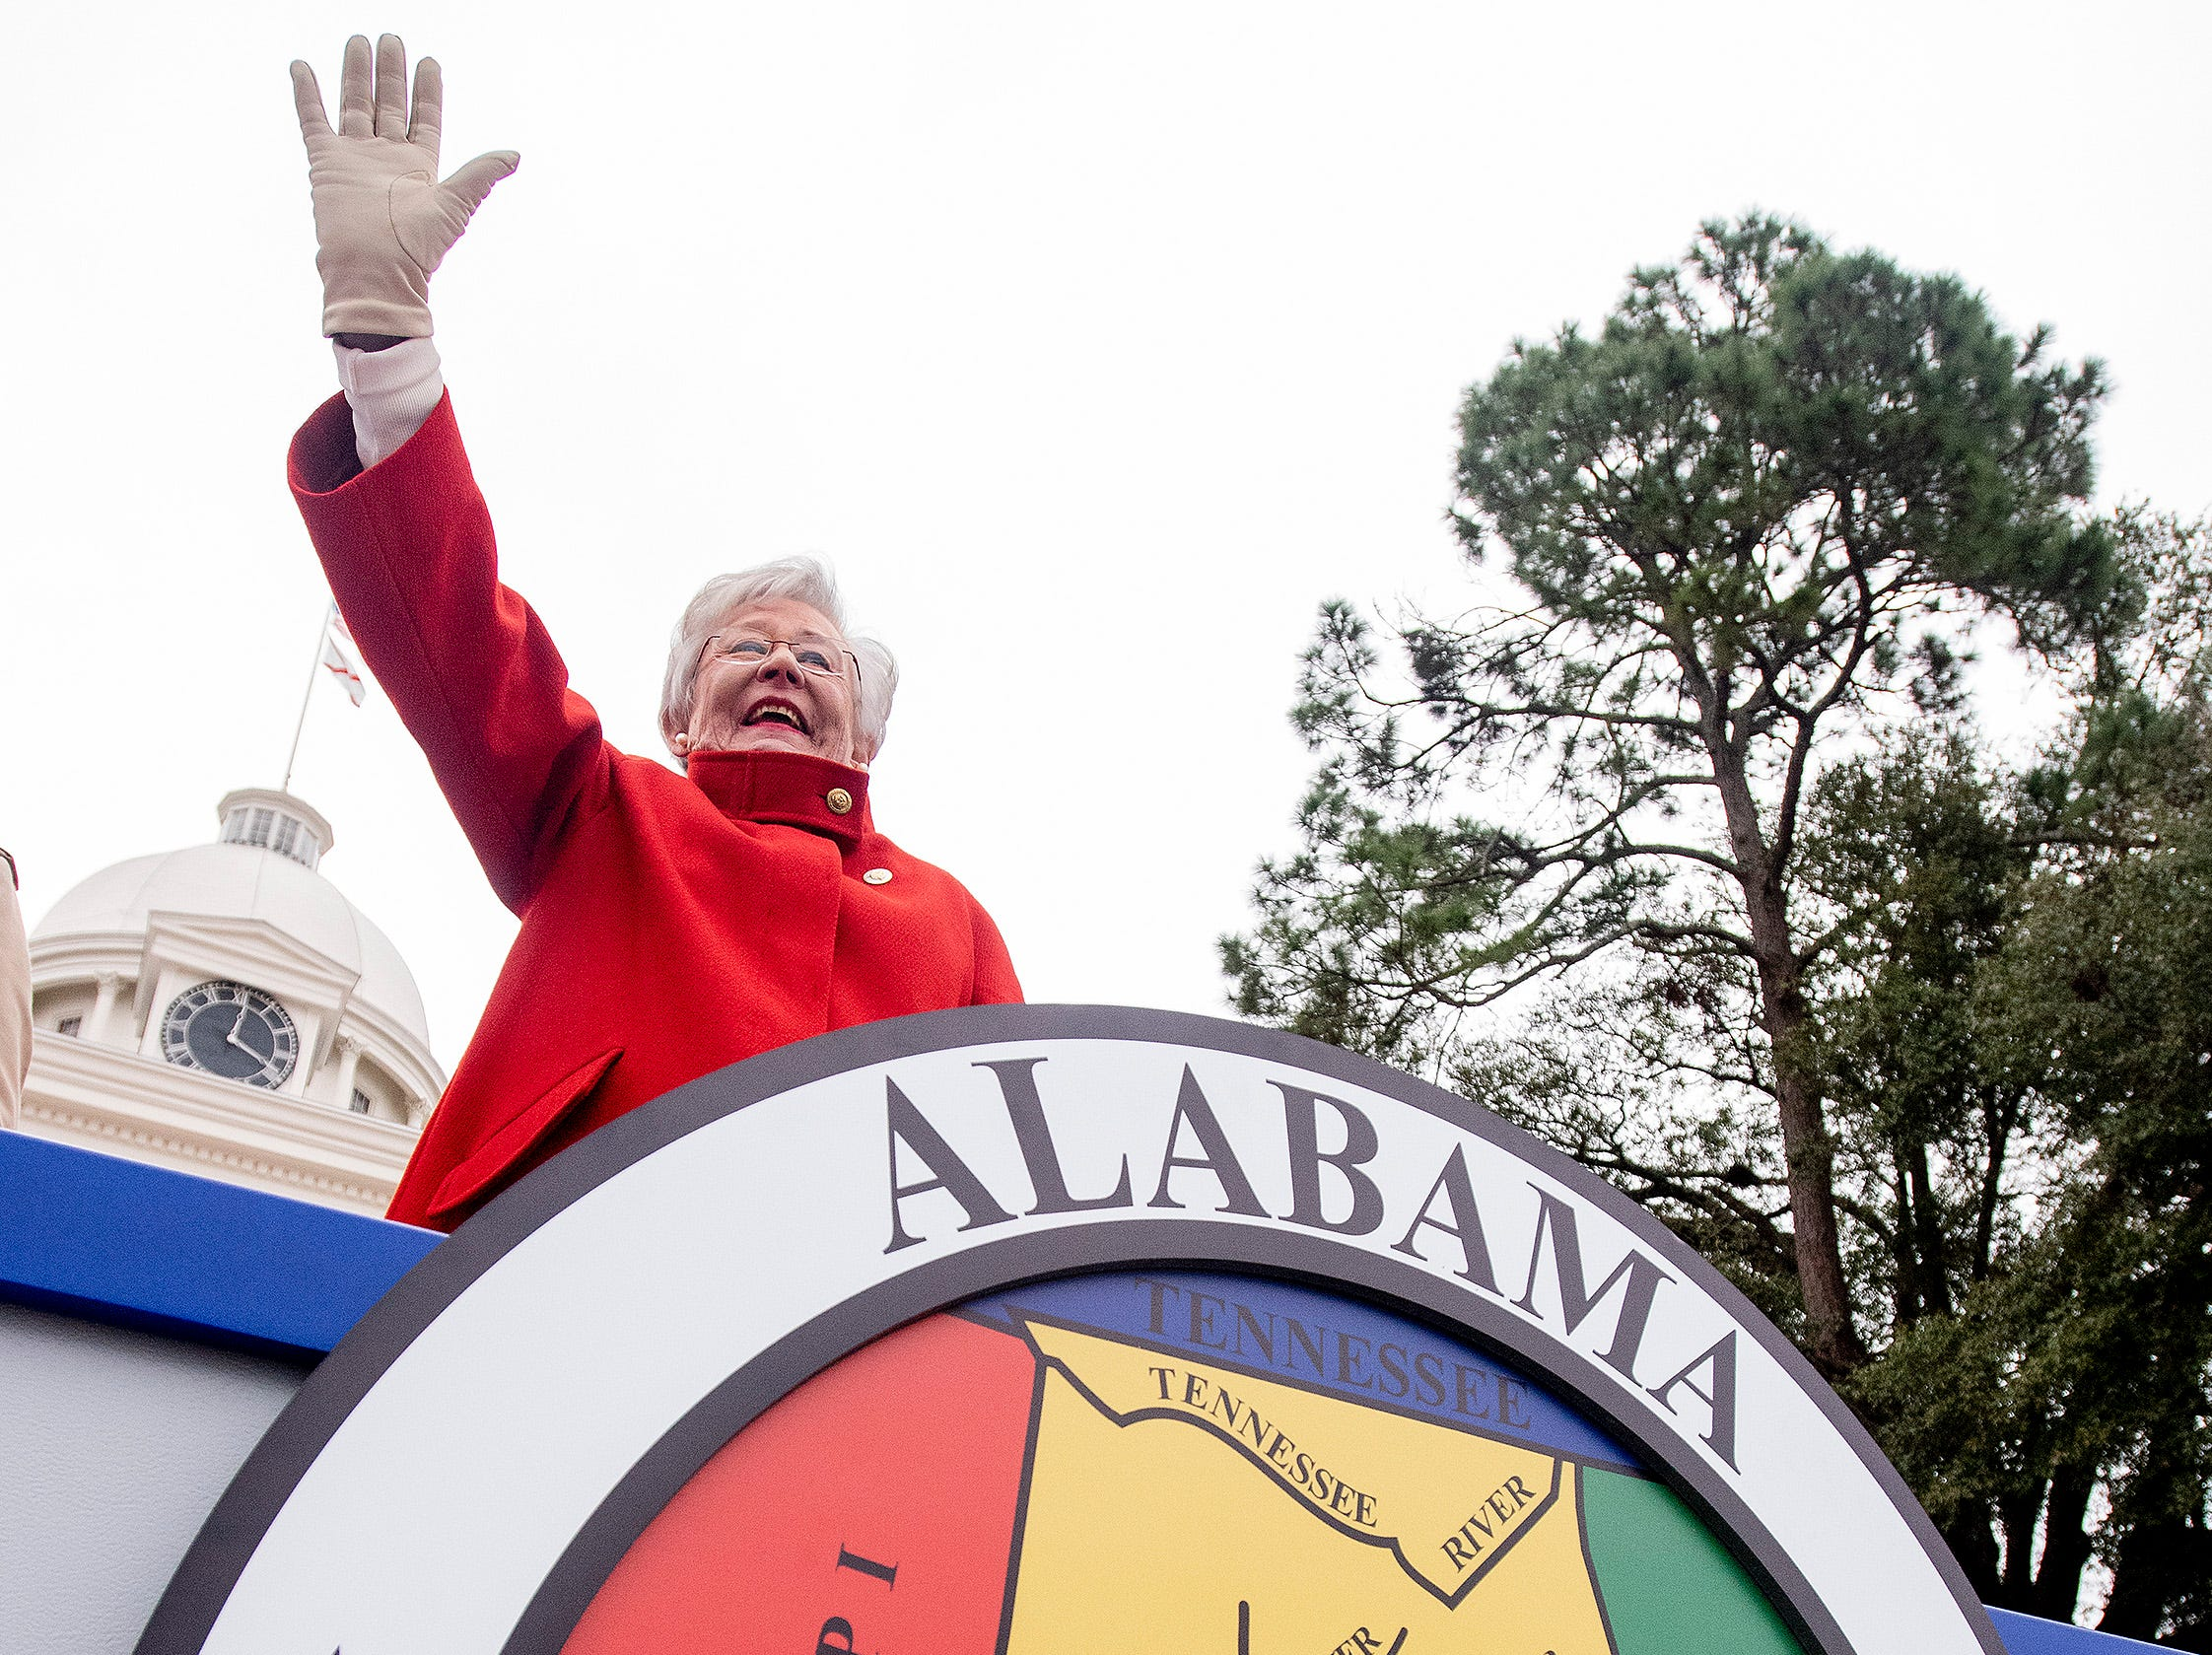 Alabama Governor Kay Ivey waves as she watches her Inaugural Parade in Montgomery, Ala., on Monday January 14, 2019.